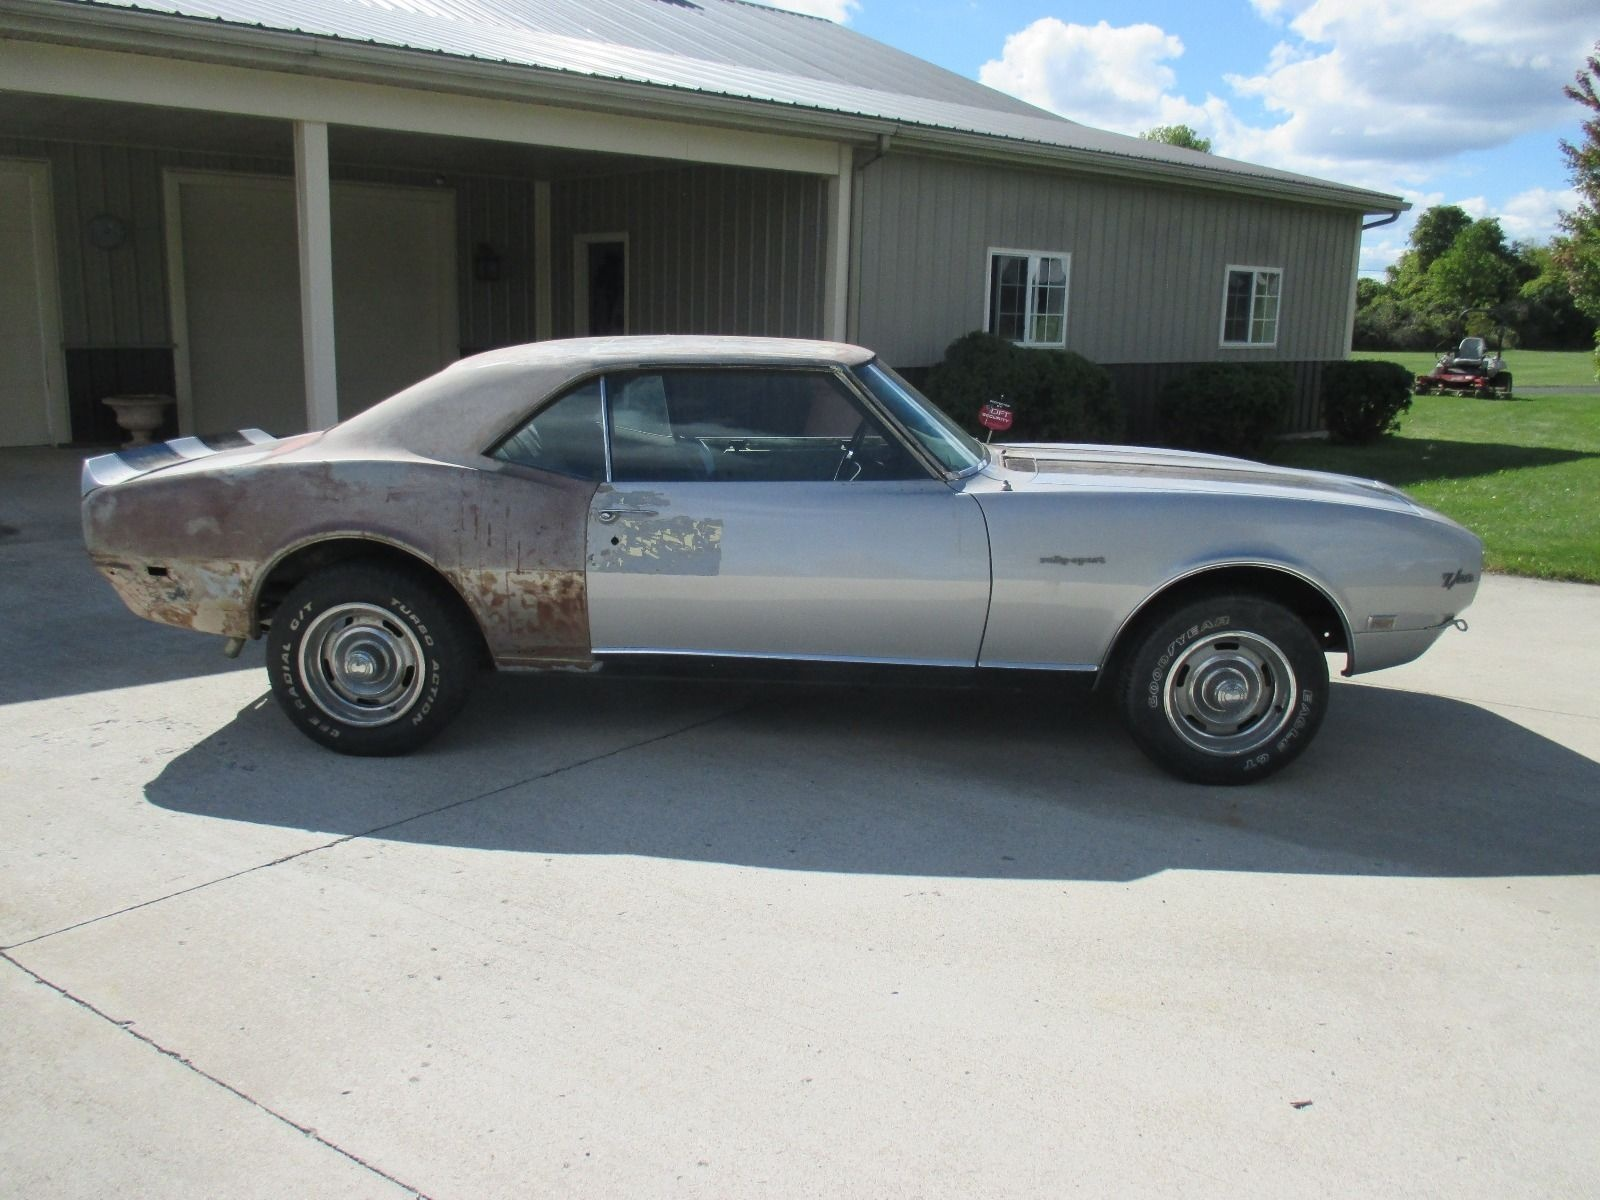 Car Auctions Ny >> Body Shop Find: 1968 Camaro Z/28